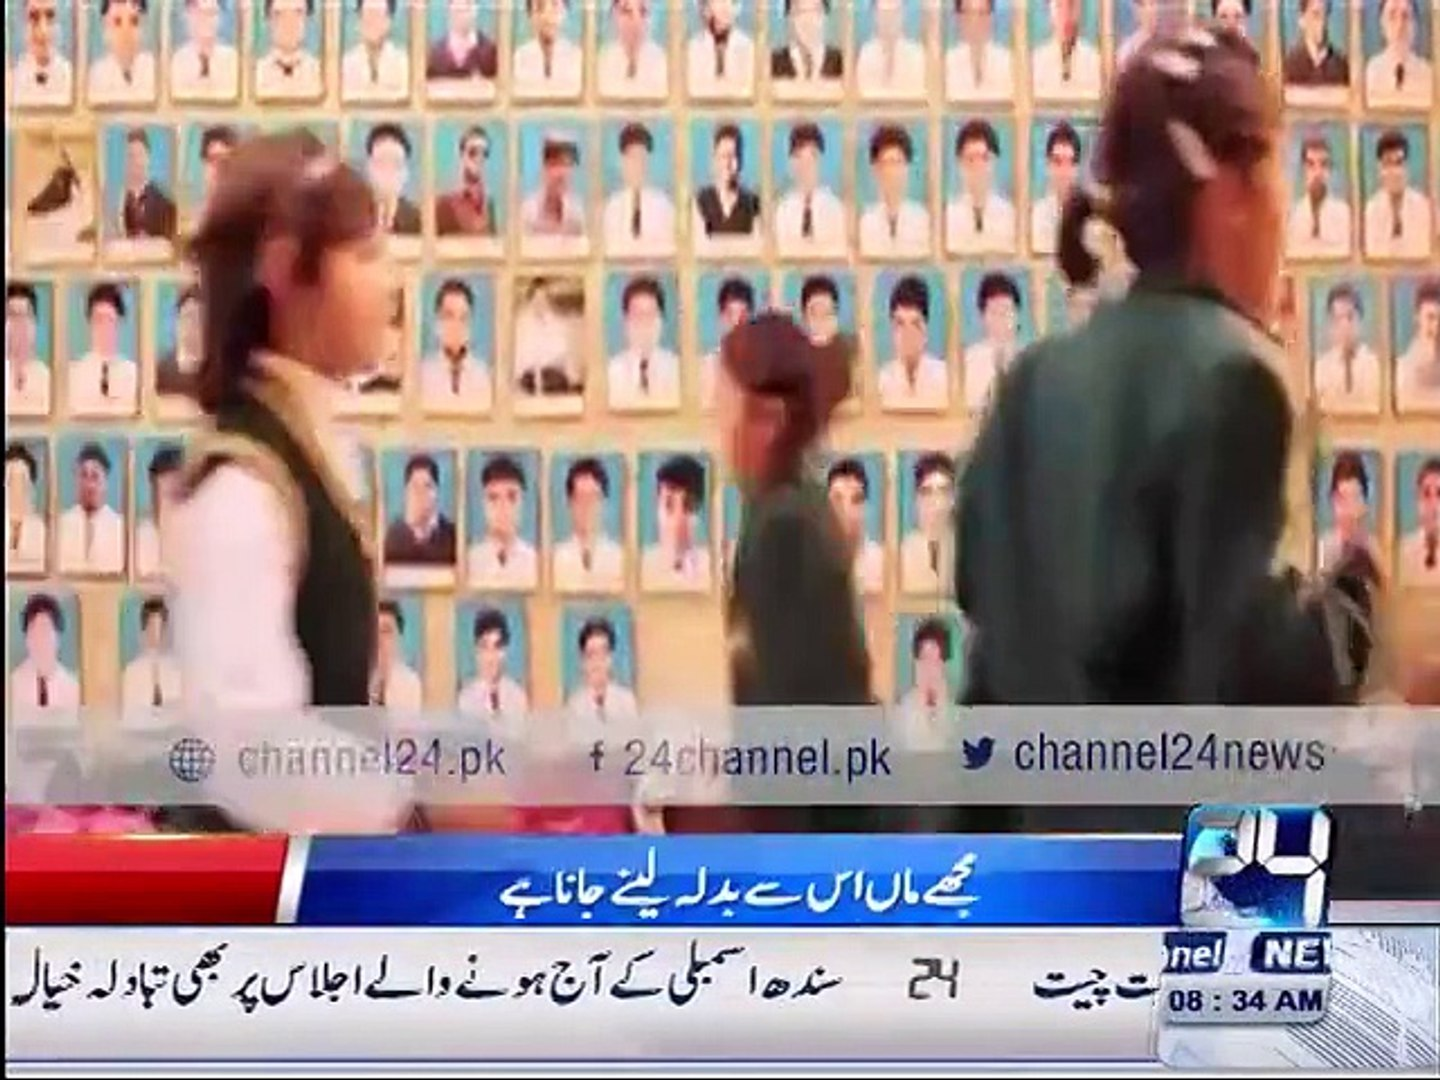 Mujhy Dushman Ke Bacho Ko Parhana Hy; In the memory of Army Public School martyrs